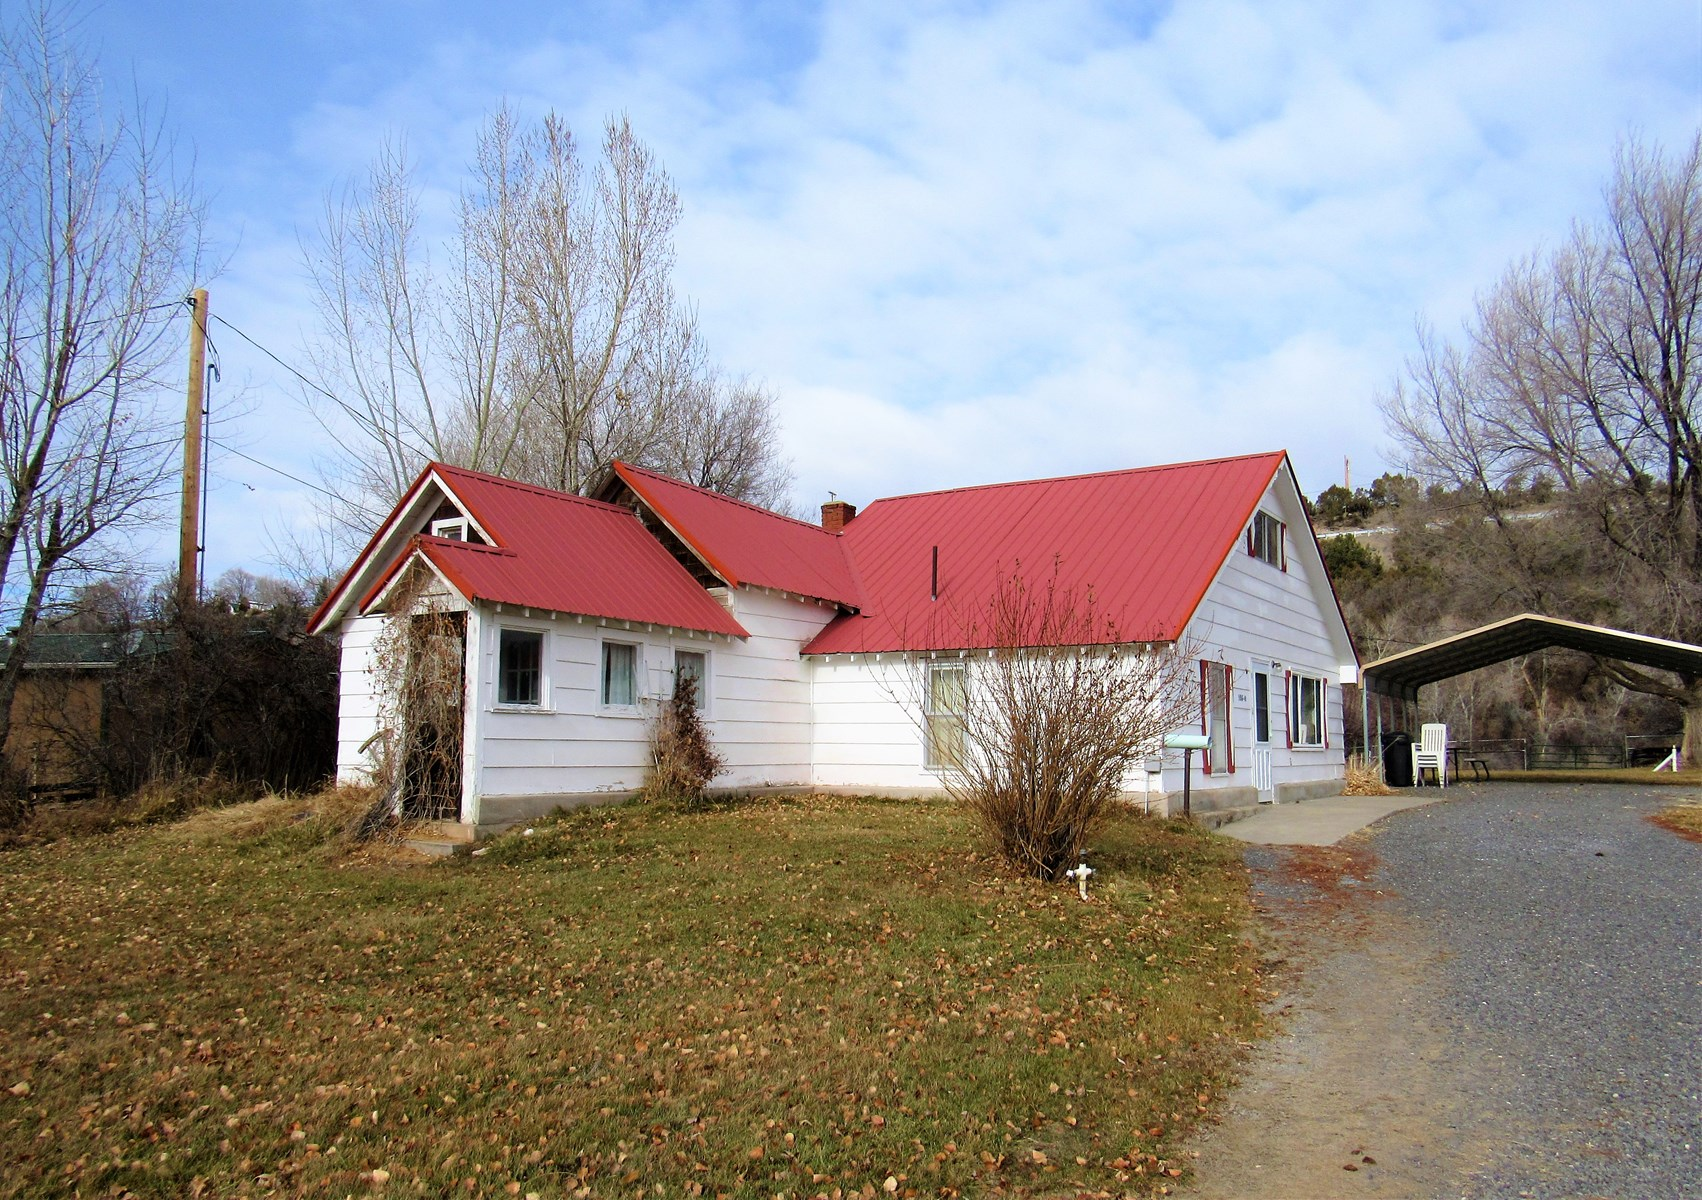 Charming Historic Farm House with acreage and creek frontage